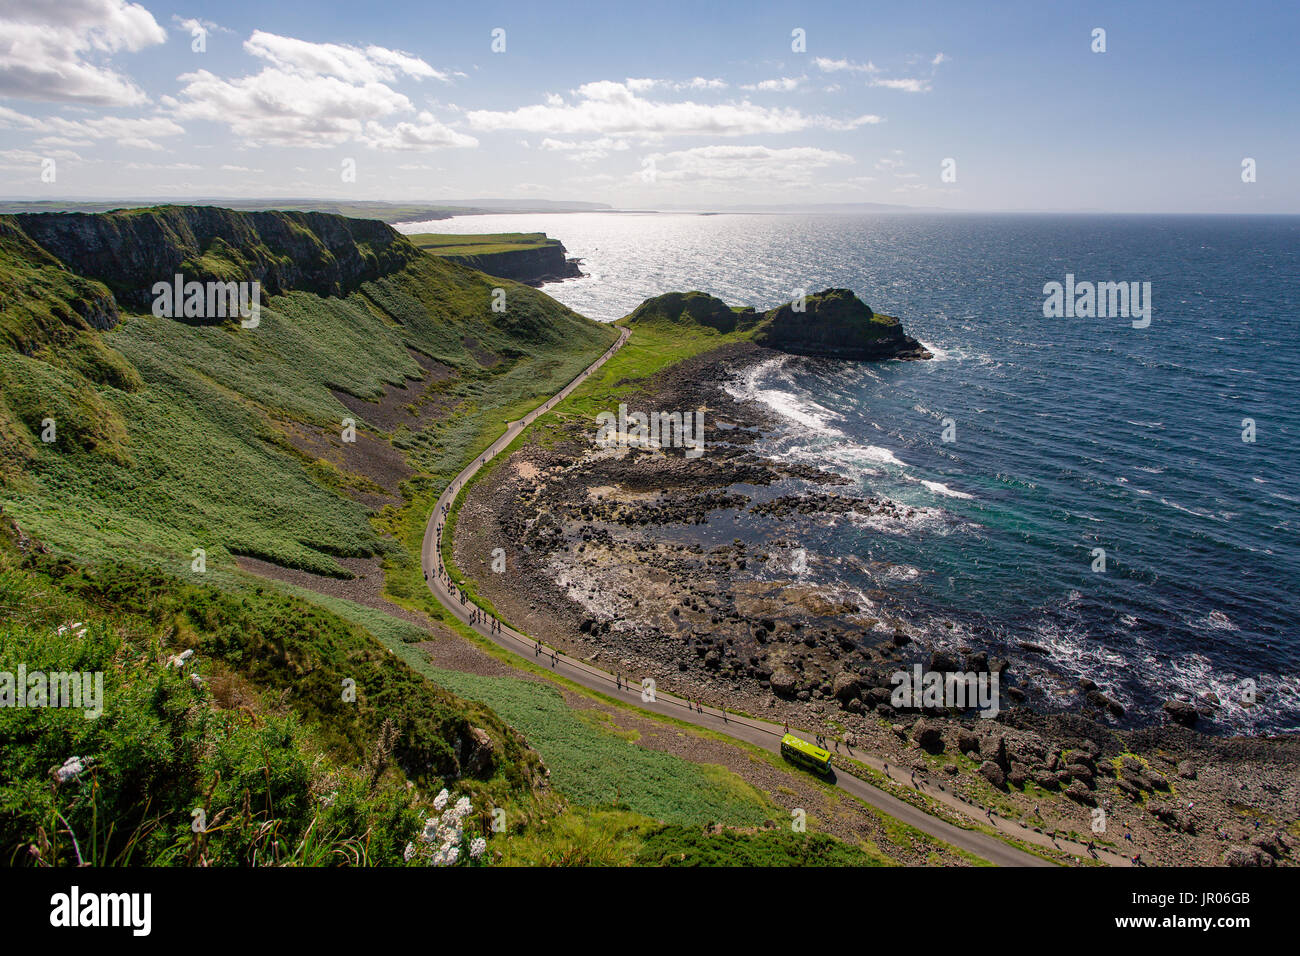 View from the cliff above the road with tourists leading to Giants Causeway one of Europe's most magnificent coastlines in Antrim Northern Ireland - Stock Image